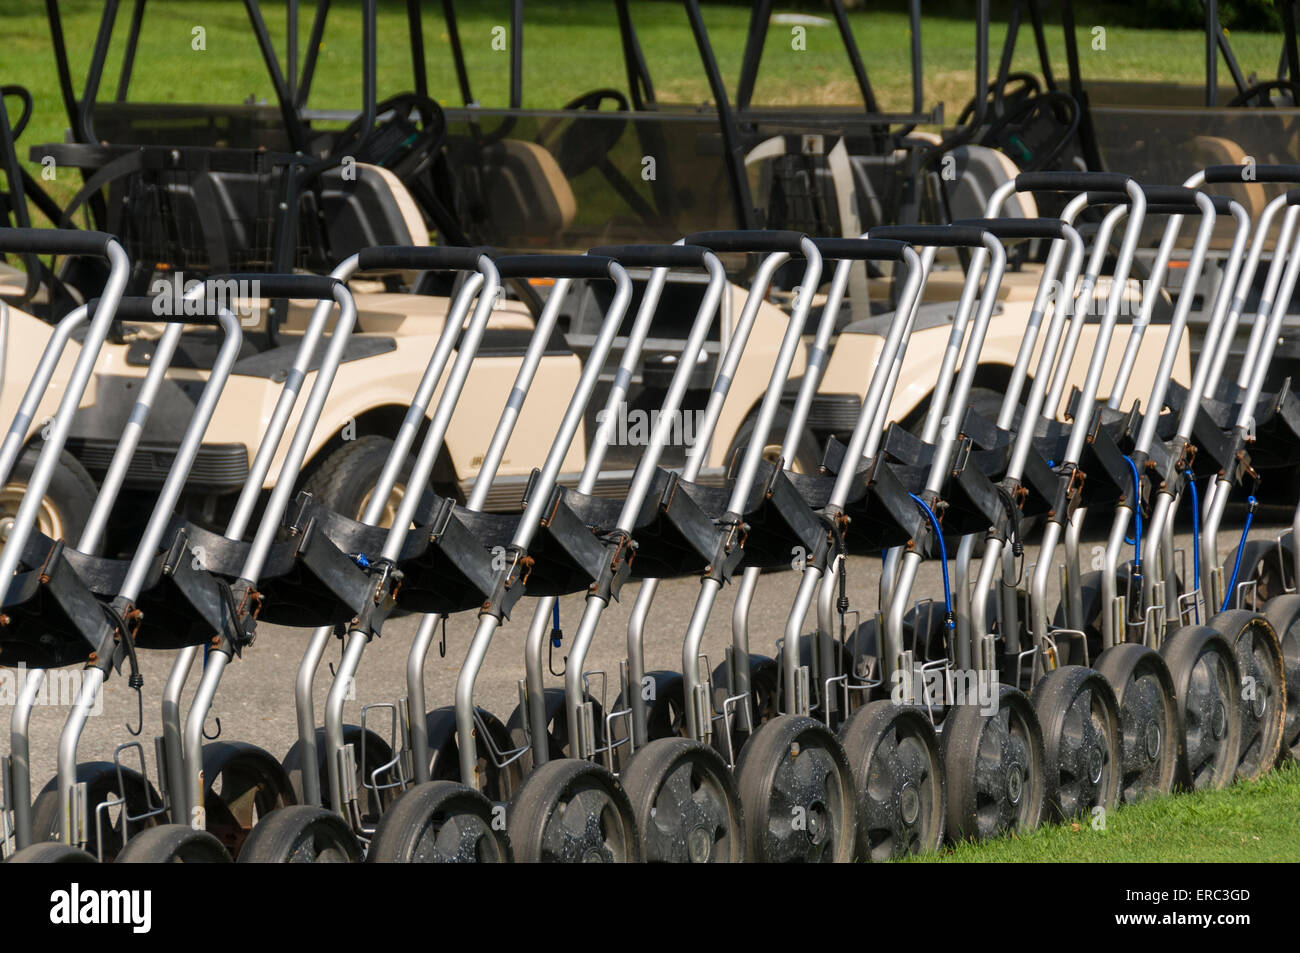 Row of golf trolleys - Stock Image